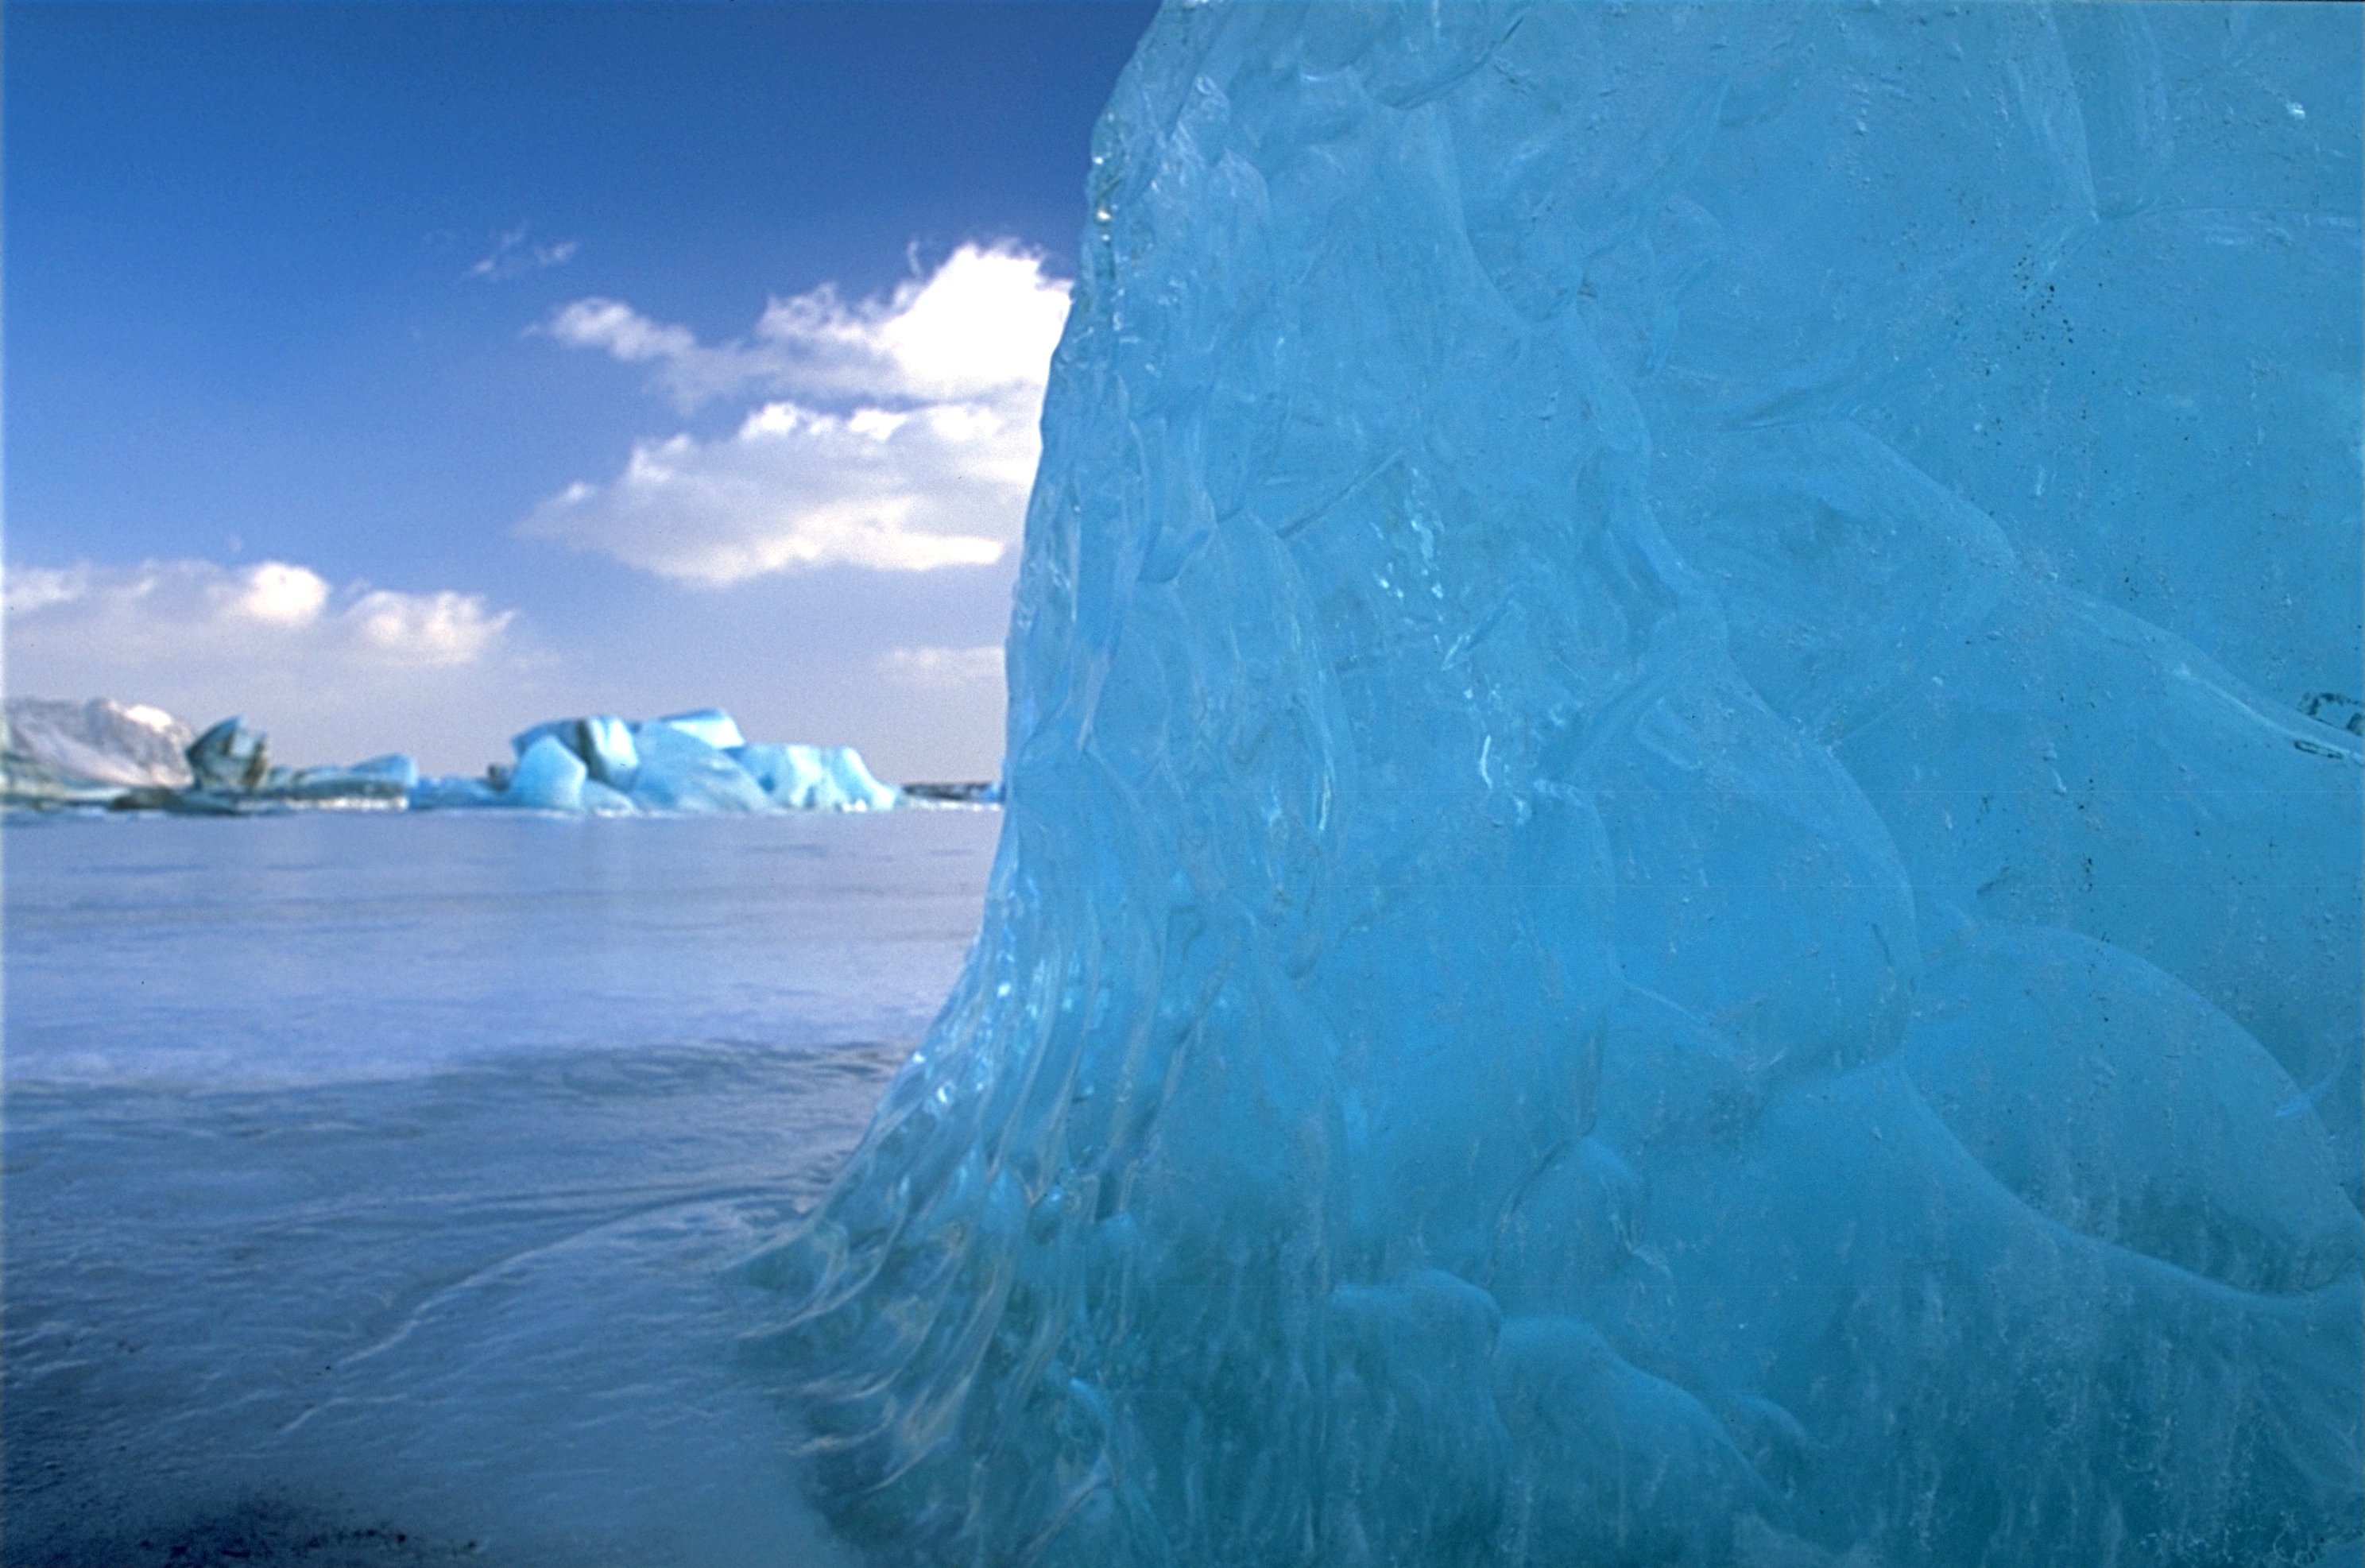 Ice Images Burg Brrr HD Wallpaper And Background Photos